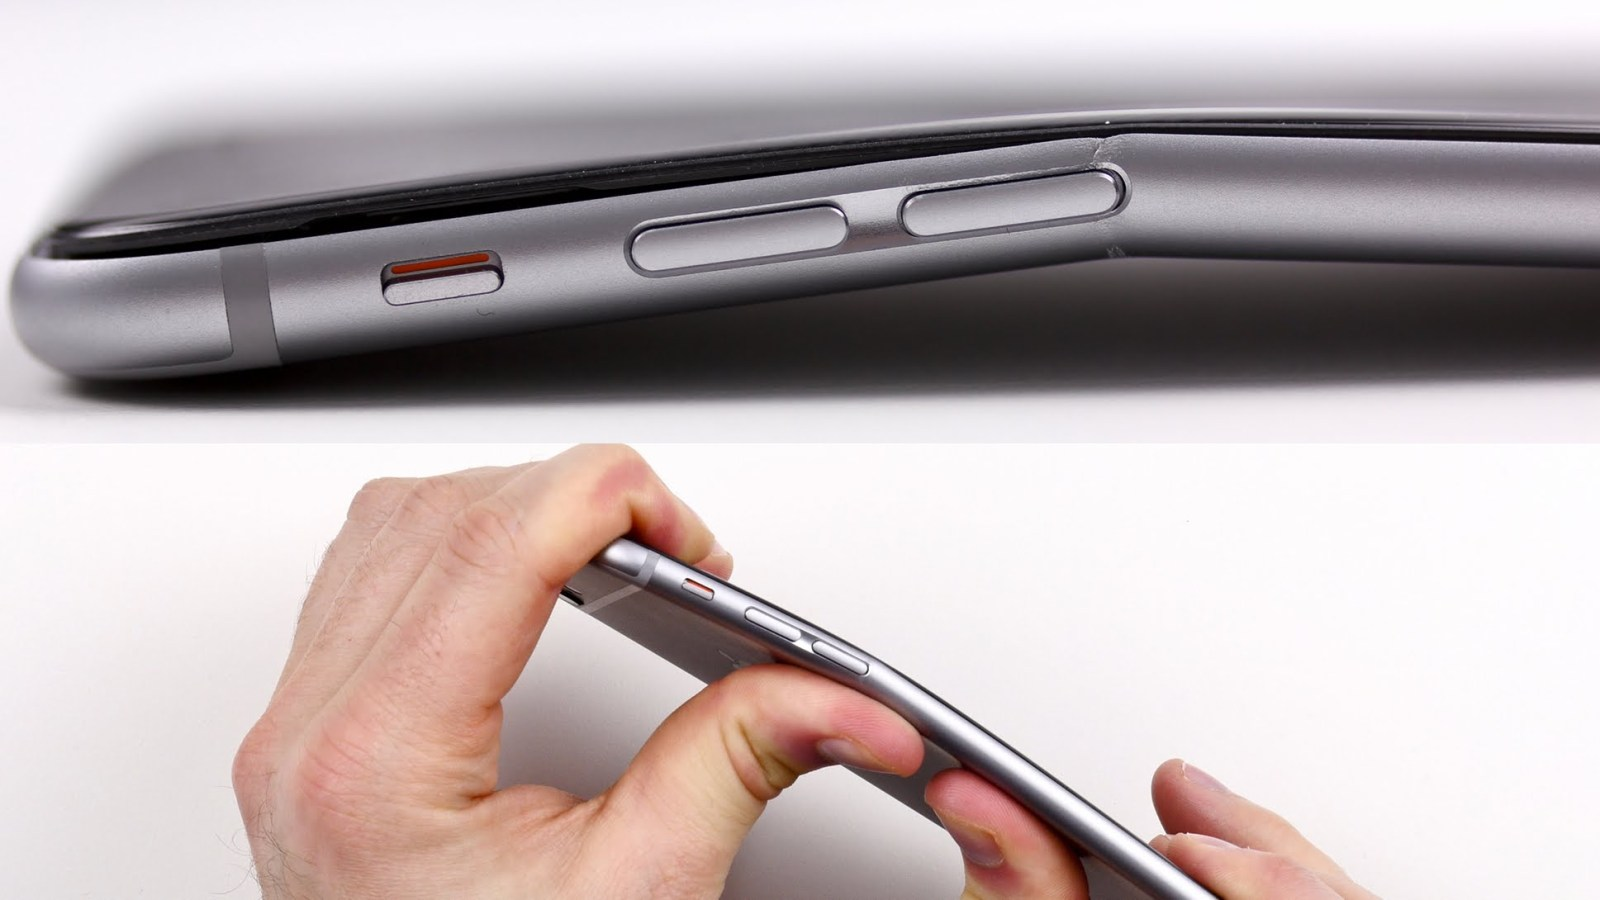 Opinion Why The Iphone 6 Bends And Why It Wouldnt Be An Issue If Apple Addressed It Properly